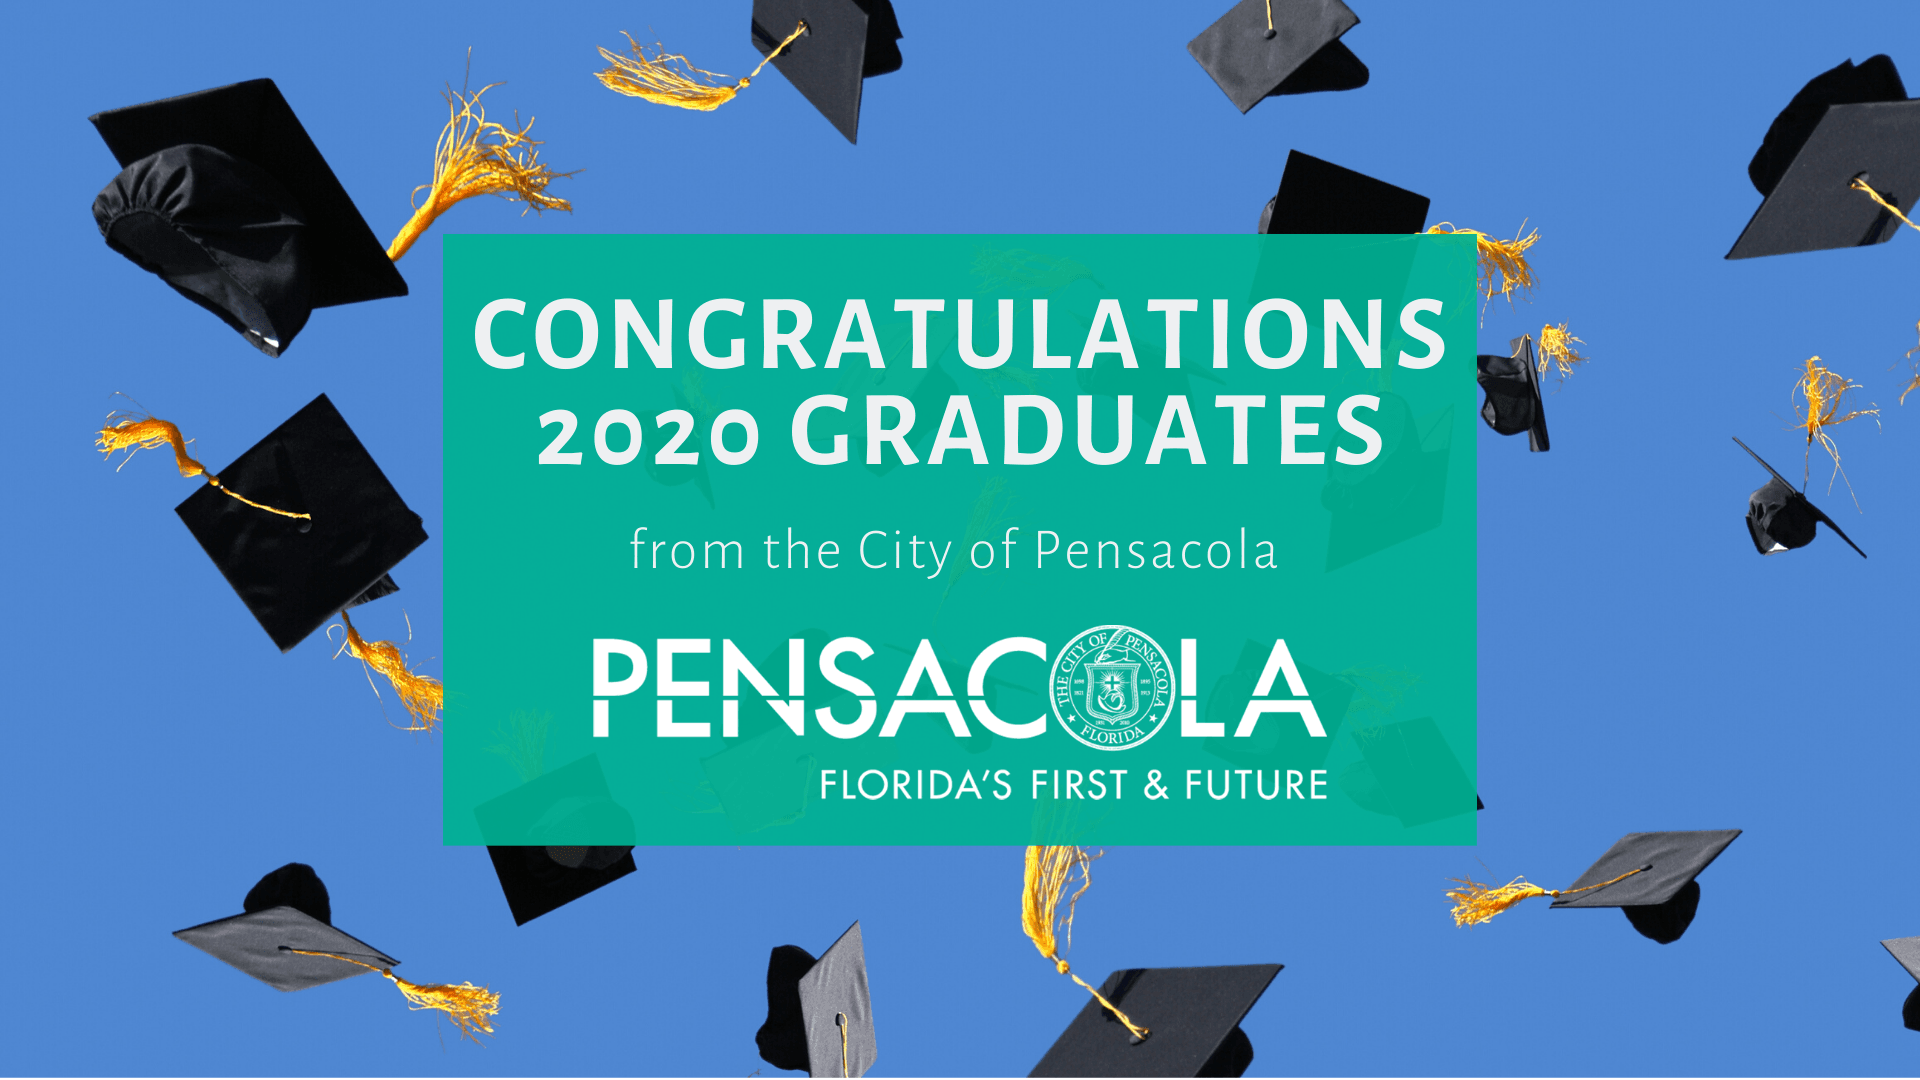 Congratulations to the class of 2020 from the city of pensacola